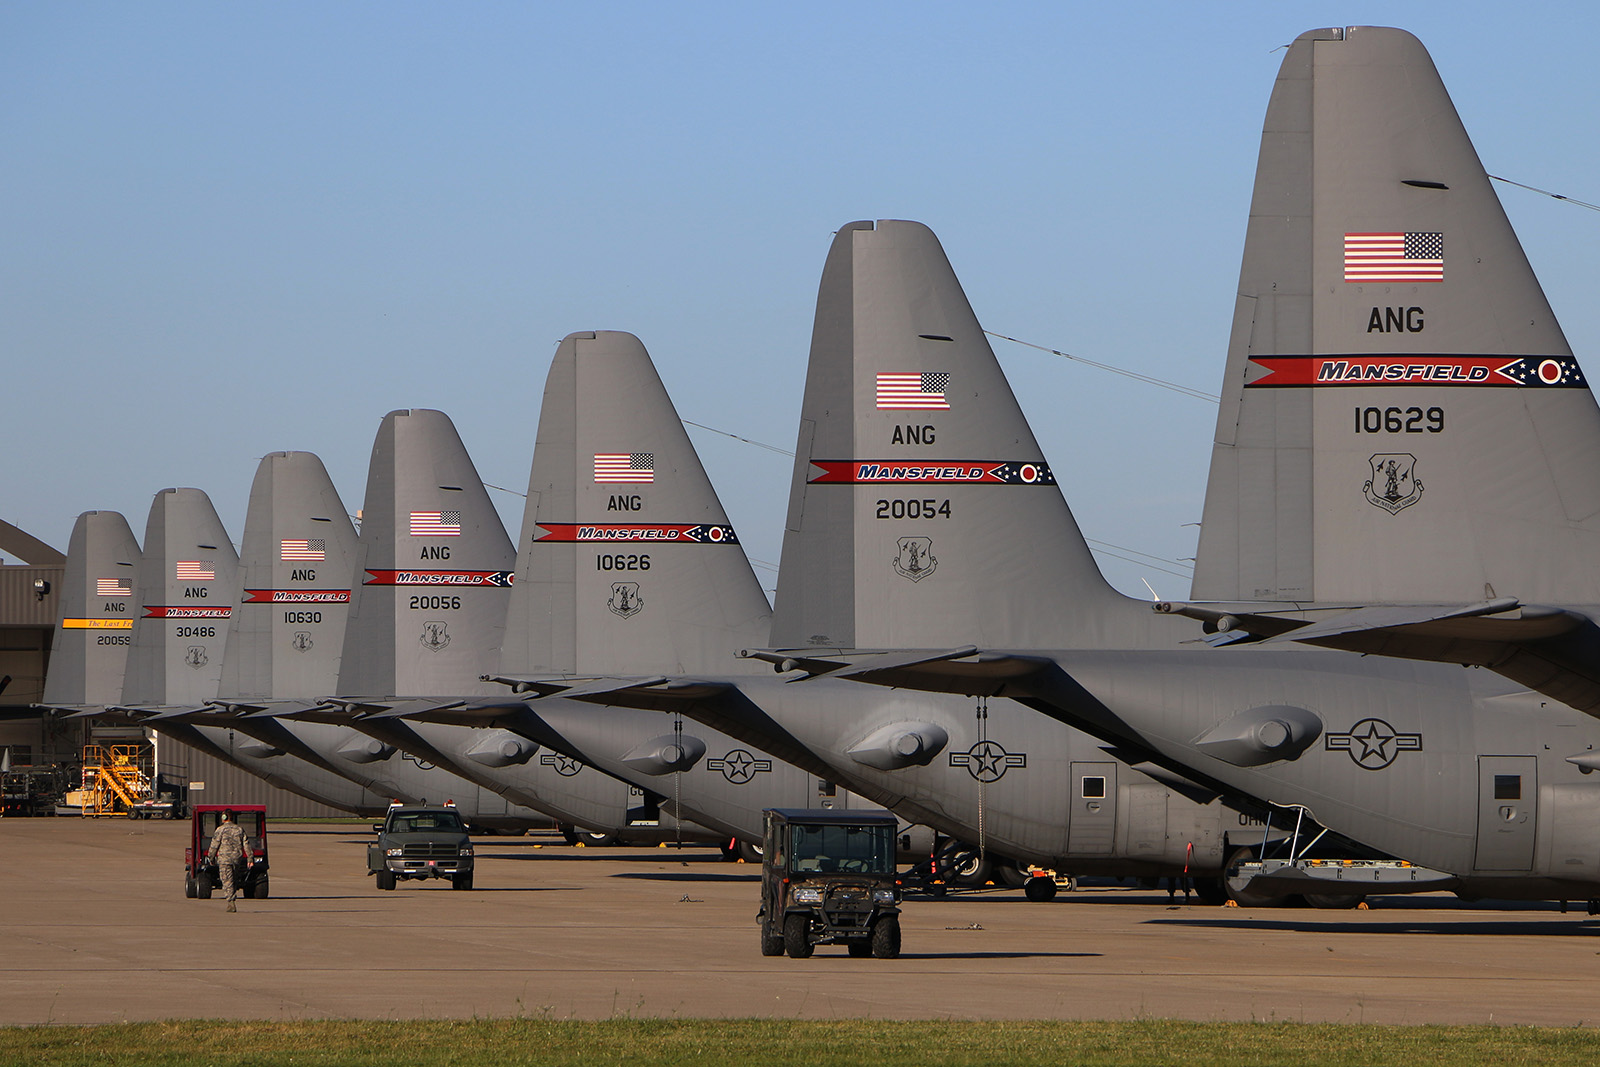 179th Air Wing C-130s in Mansfield, Ohio. At least one of these magnificent beasts will be on display at Port Clinton. (photo Tech. Sgt. Joe Harwood via 172nd AW)